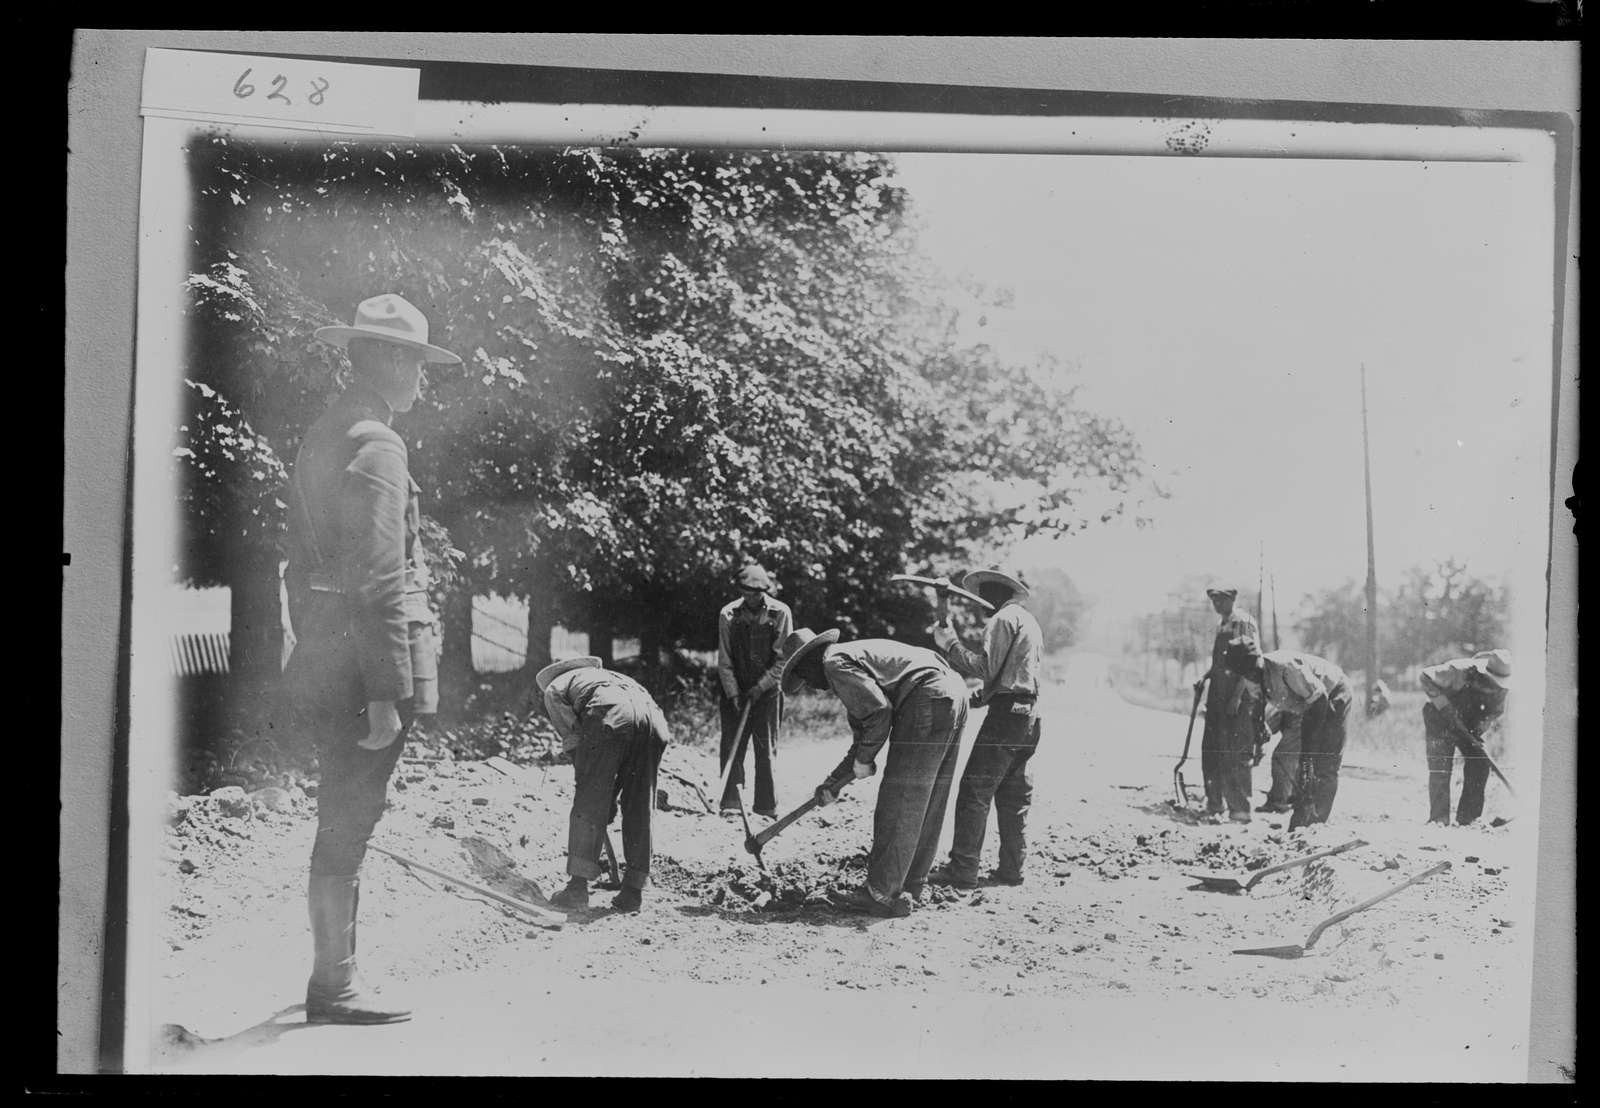 Highway construction crew, probably Michigan State Highway Dept., digging, Michigan